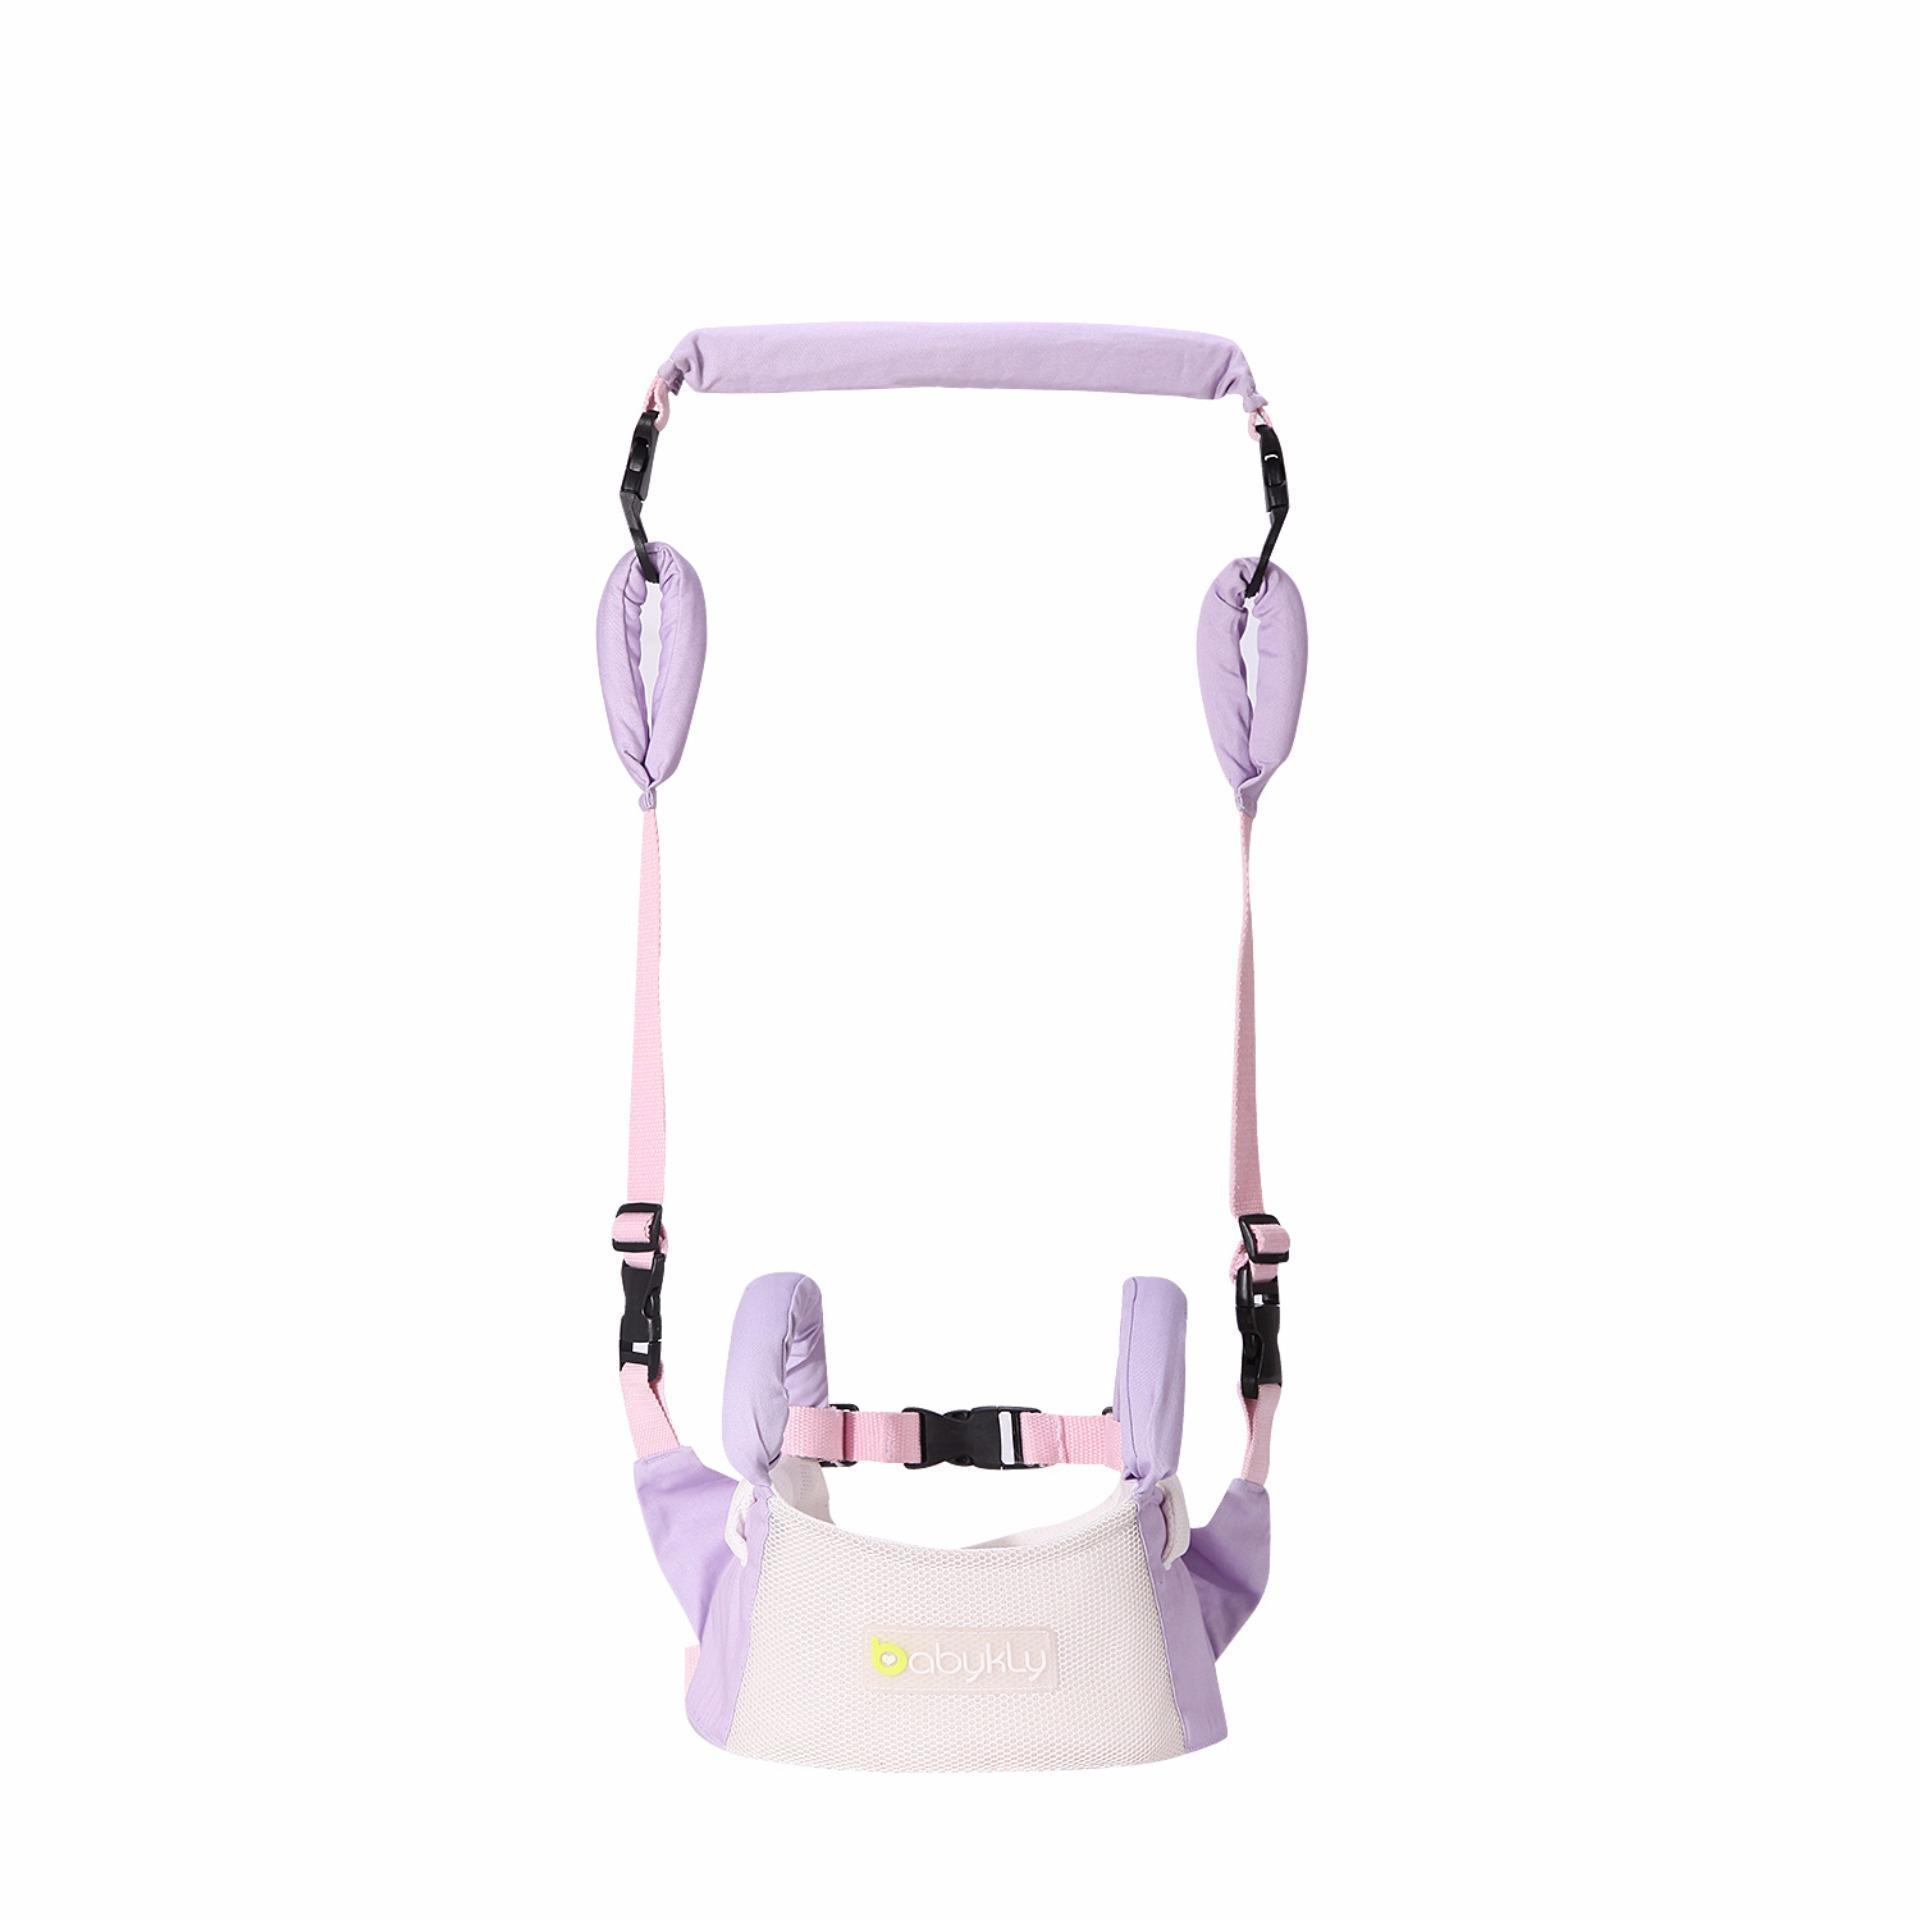 Review Tentang Baby Walker Balita Leash Backpack Untuk Anak Anak Bayi Berjalan Belt Child Safety Harness Ungu Intl